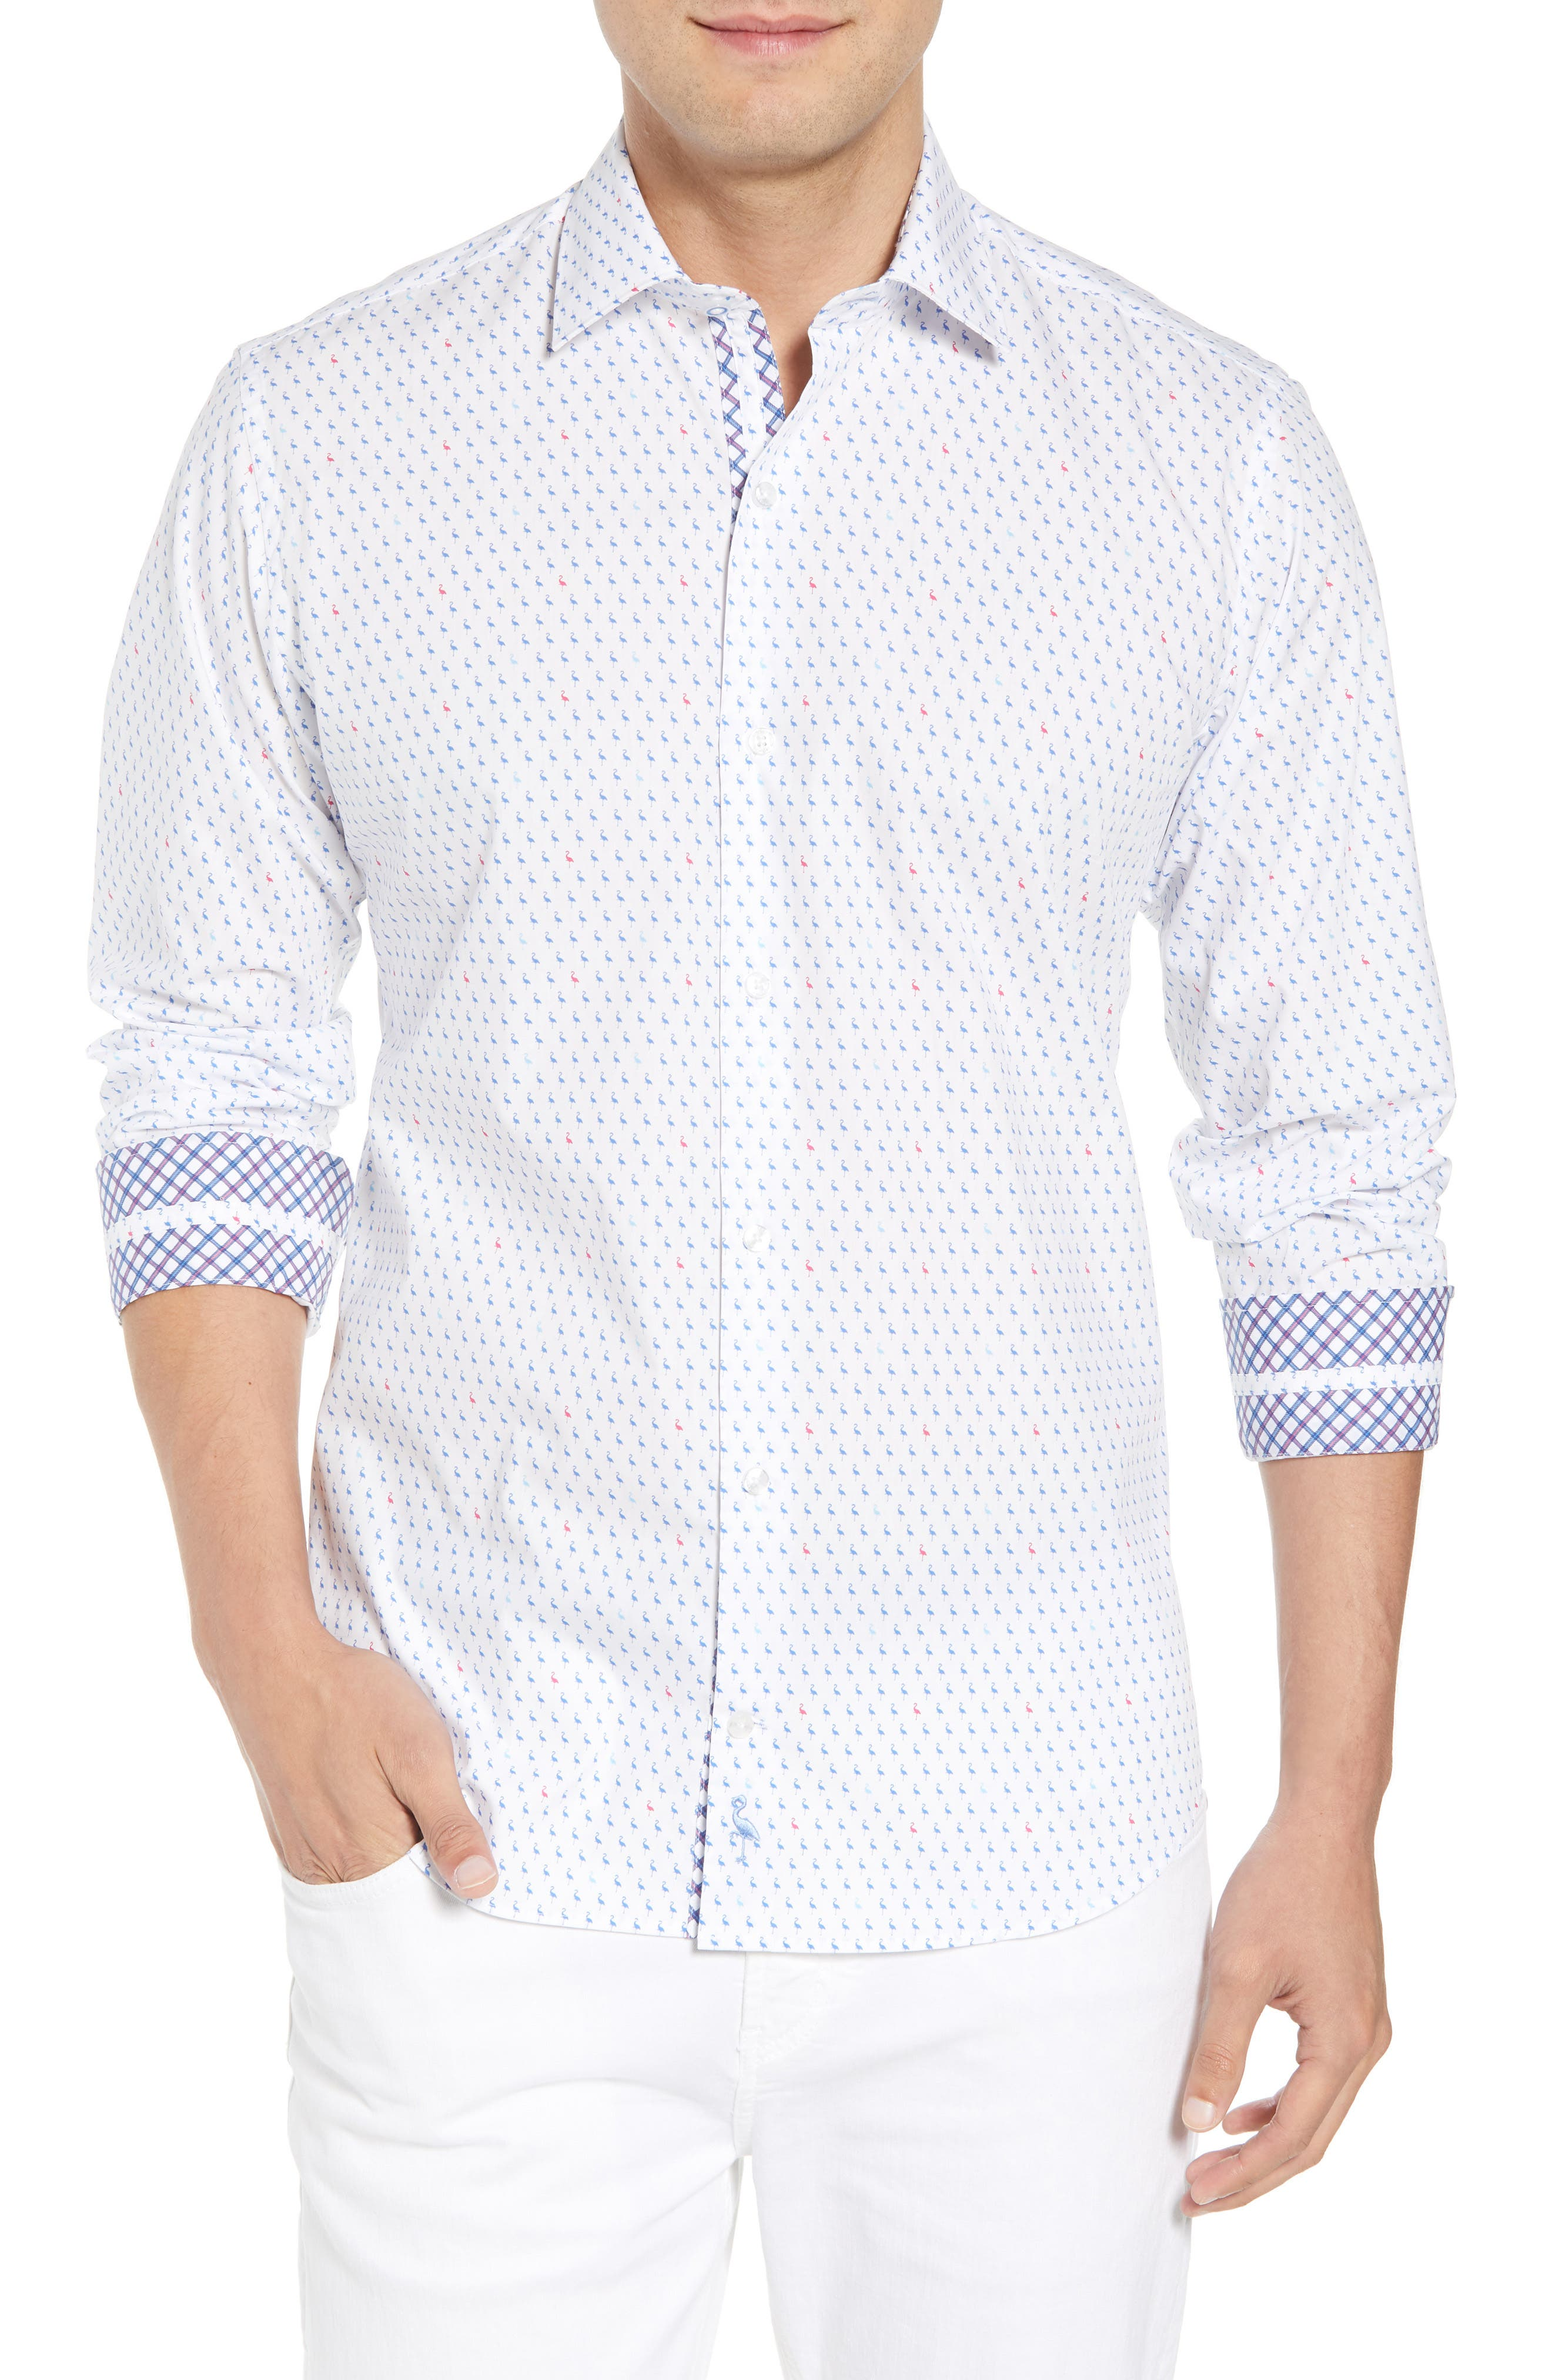 Auden Regular Fit Print Sport Shirt,                         Main,                         color, 490